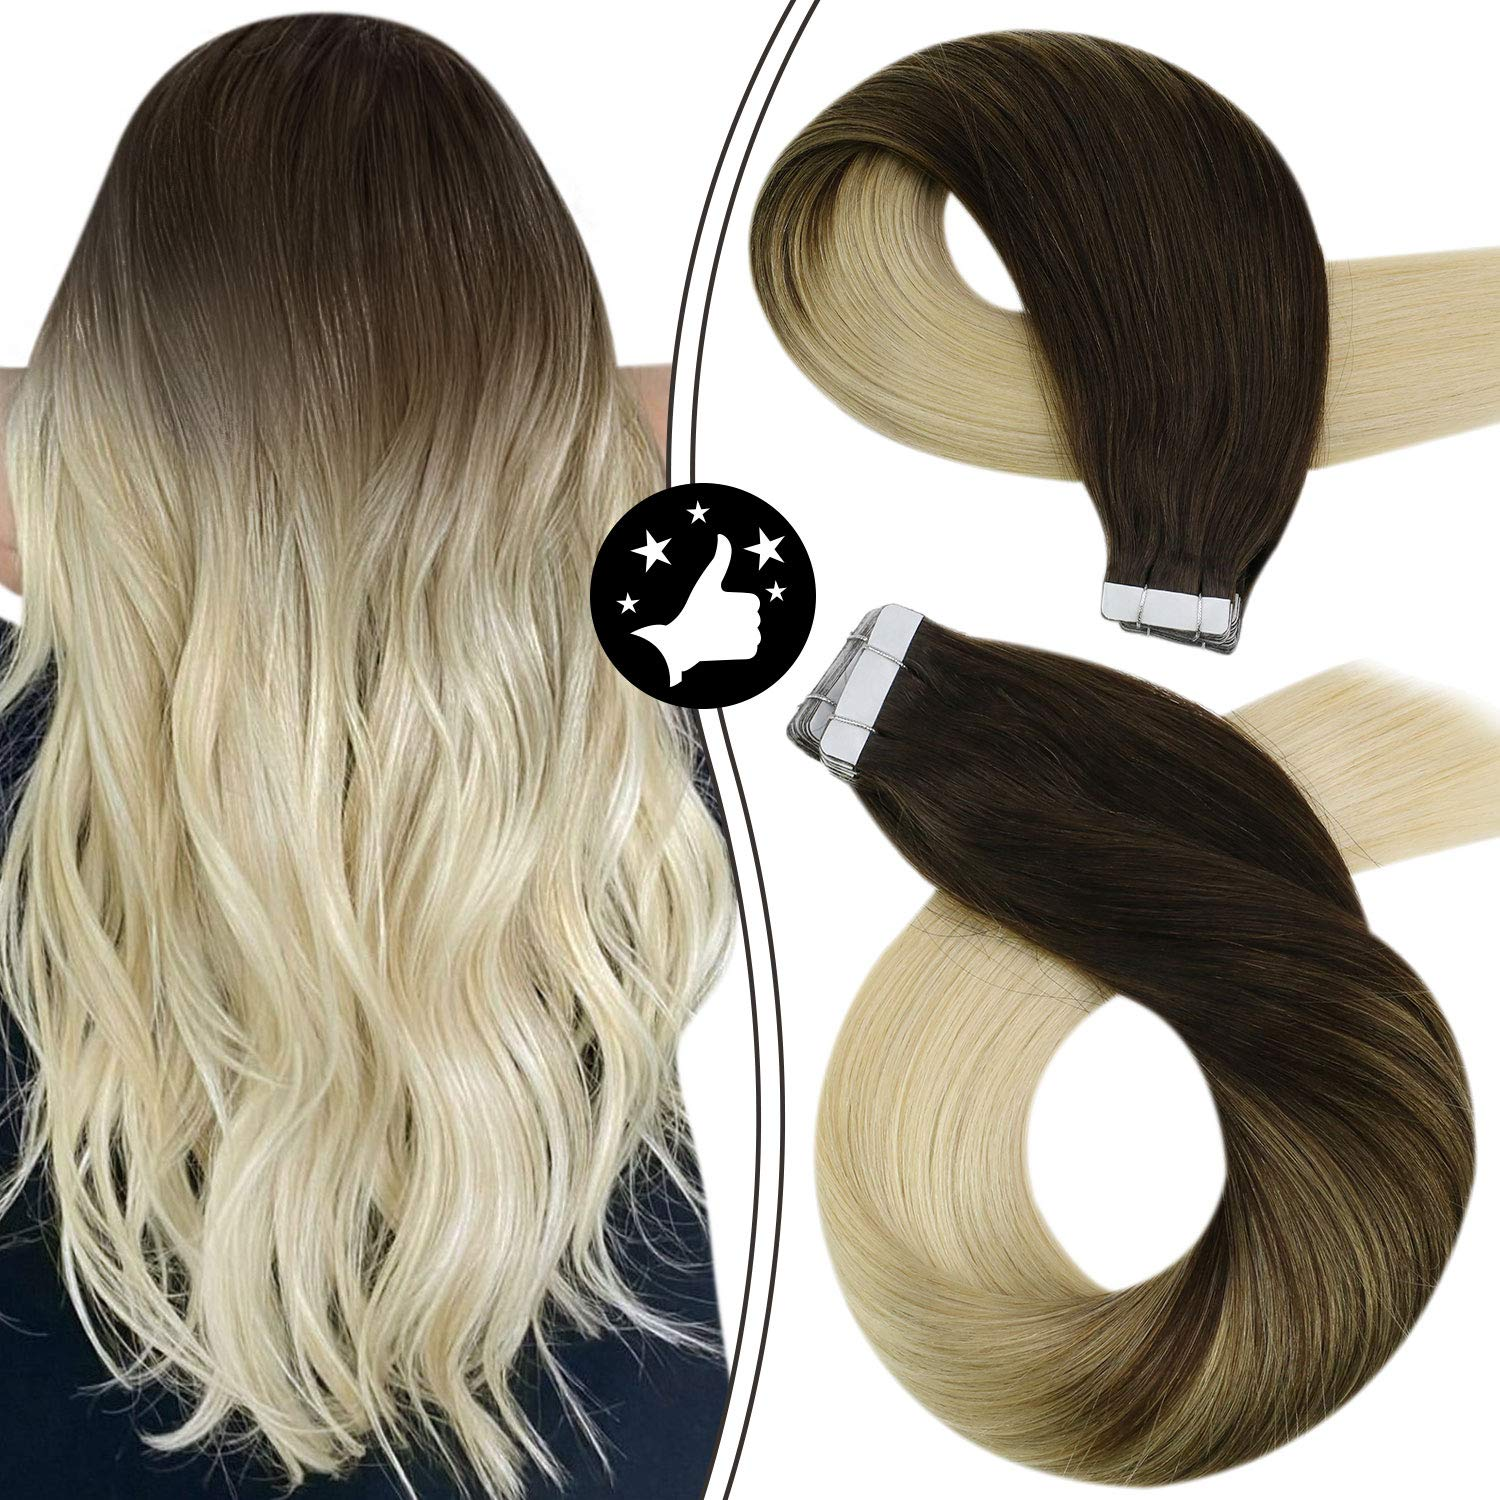 Tape in Extensions Human Hair Straight Machine Remy Balayage Brown and Blonde 100% Real Skin Weft Invisibe Seamless Hair